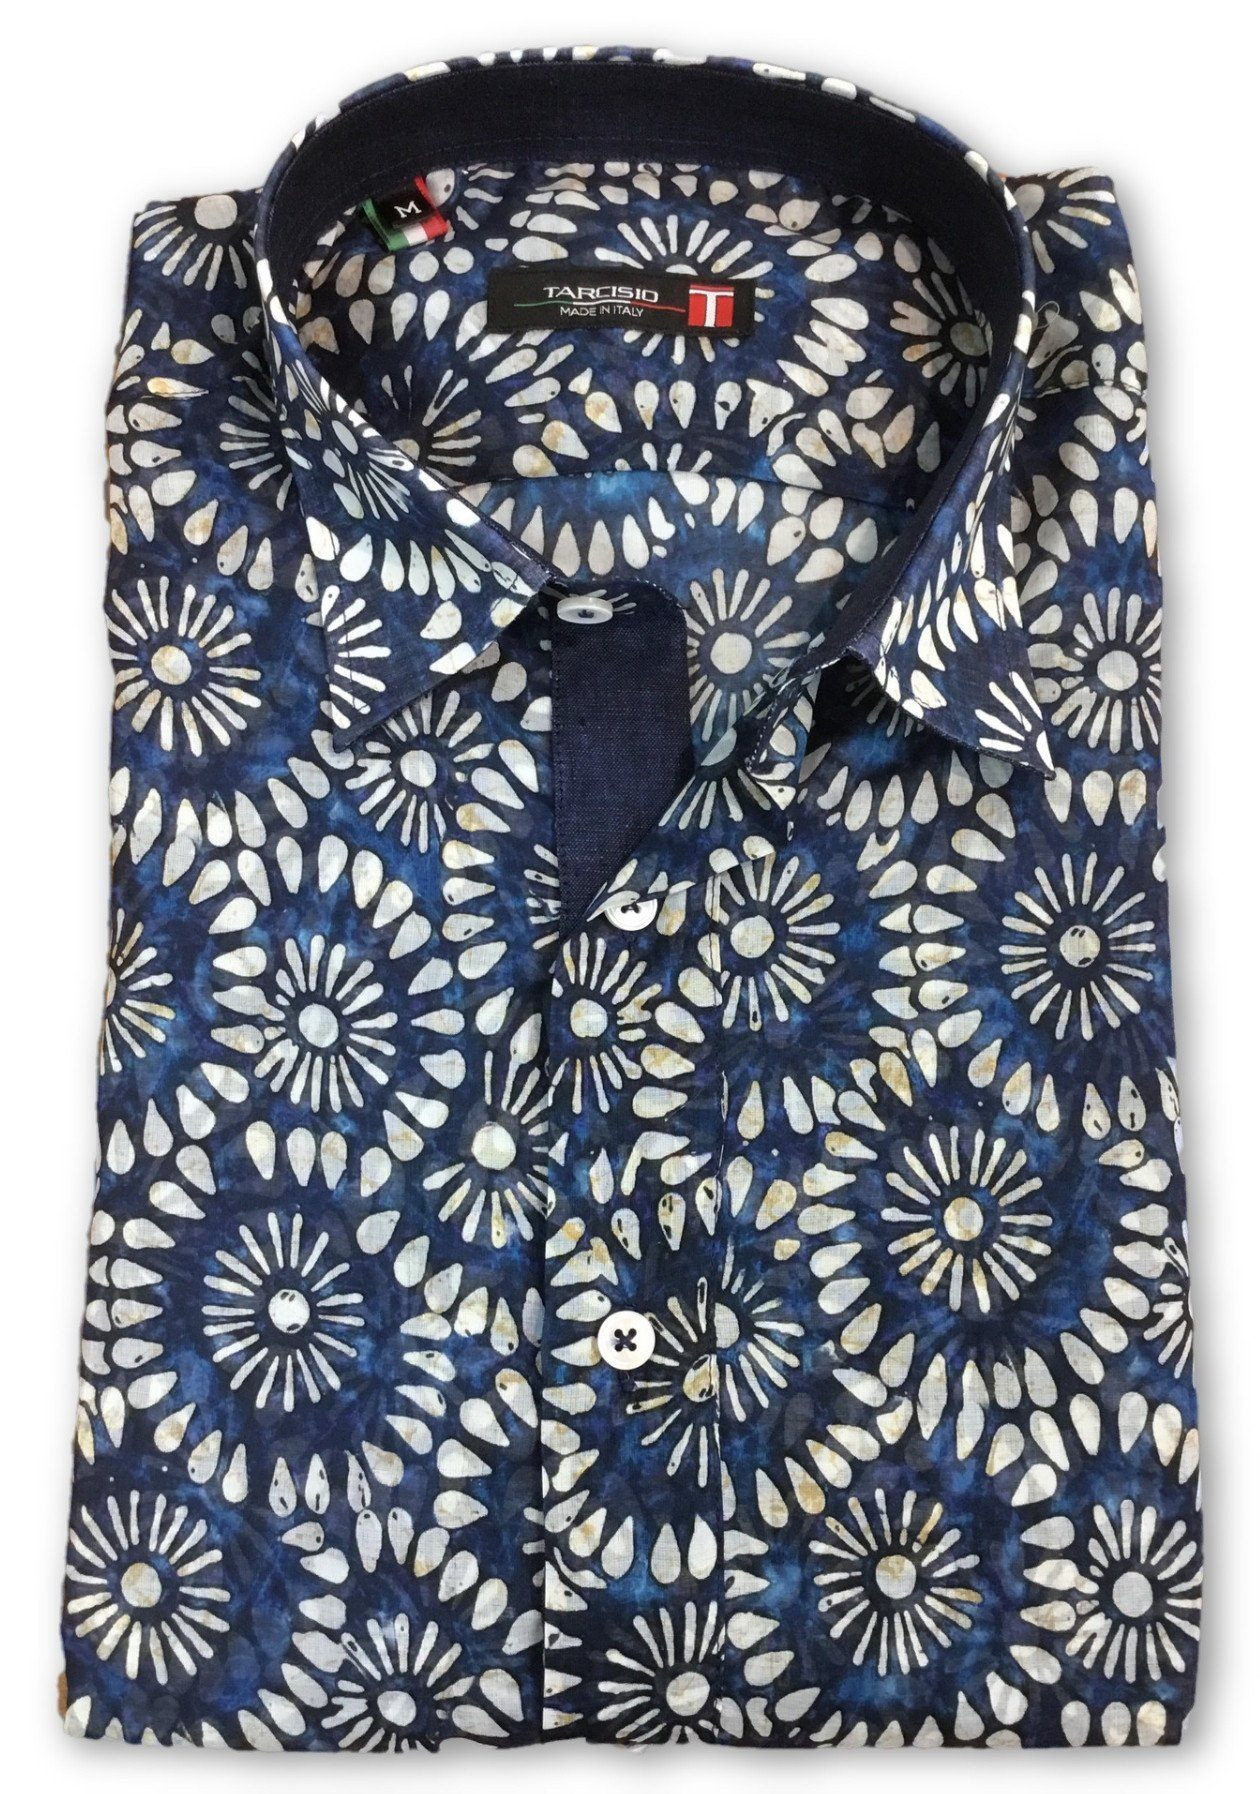 Tarciso Cotton Voile,SPORT SHIRT,Tarciso, | GentRow.com